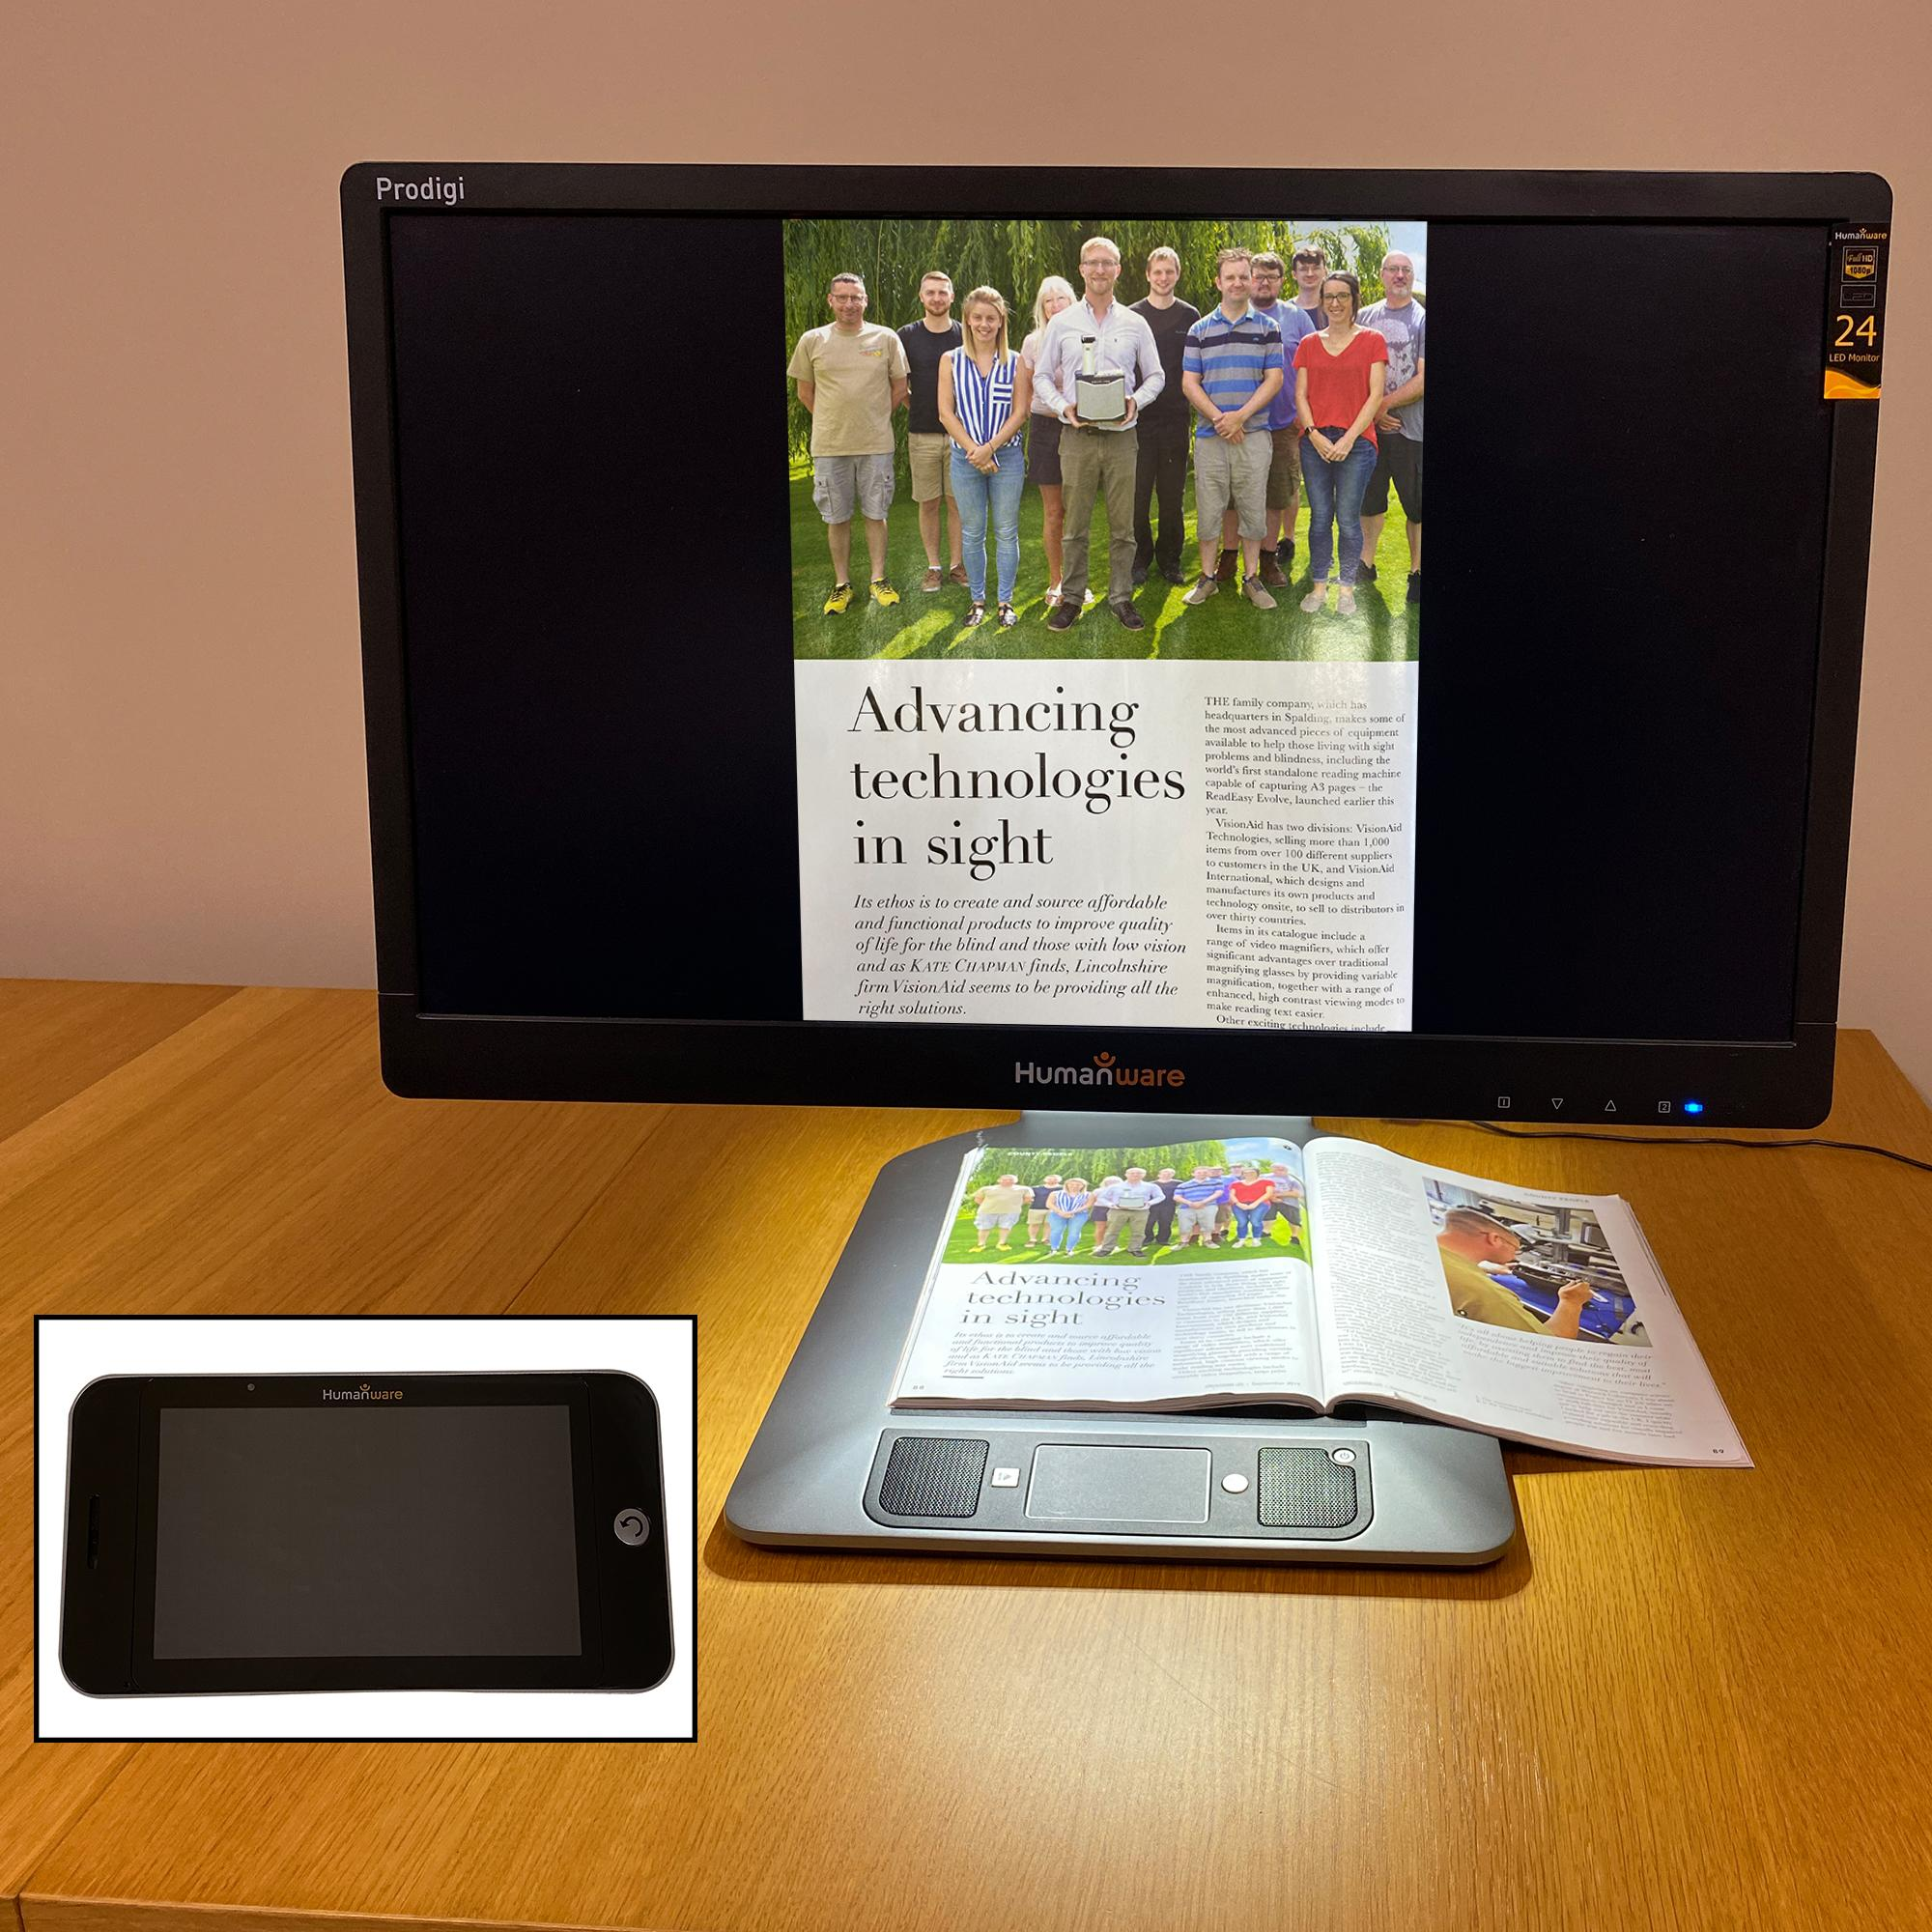 The Humanware Prodigi Duo 24 inch screen, and the accompanying 5 inch tablet.